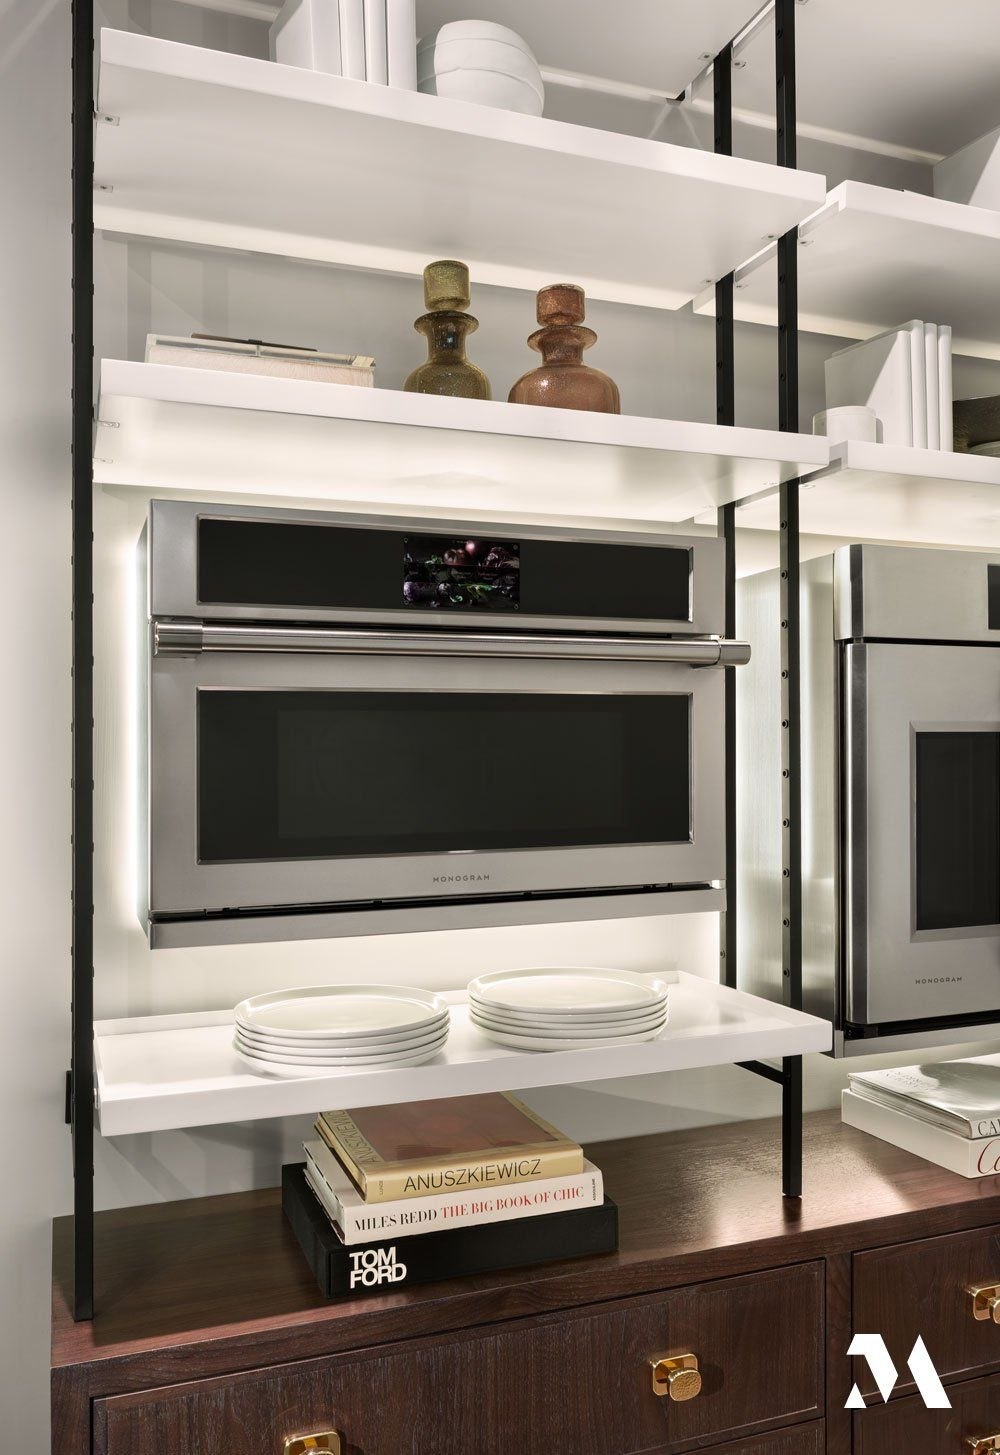 Kbis 2020 Was Truly A Celebration For Monogram With The Launch Of Two New Luxury Appliance In 2020 Professional Kitchen Appliances Luxury Appliances Kitchen Appliances